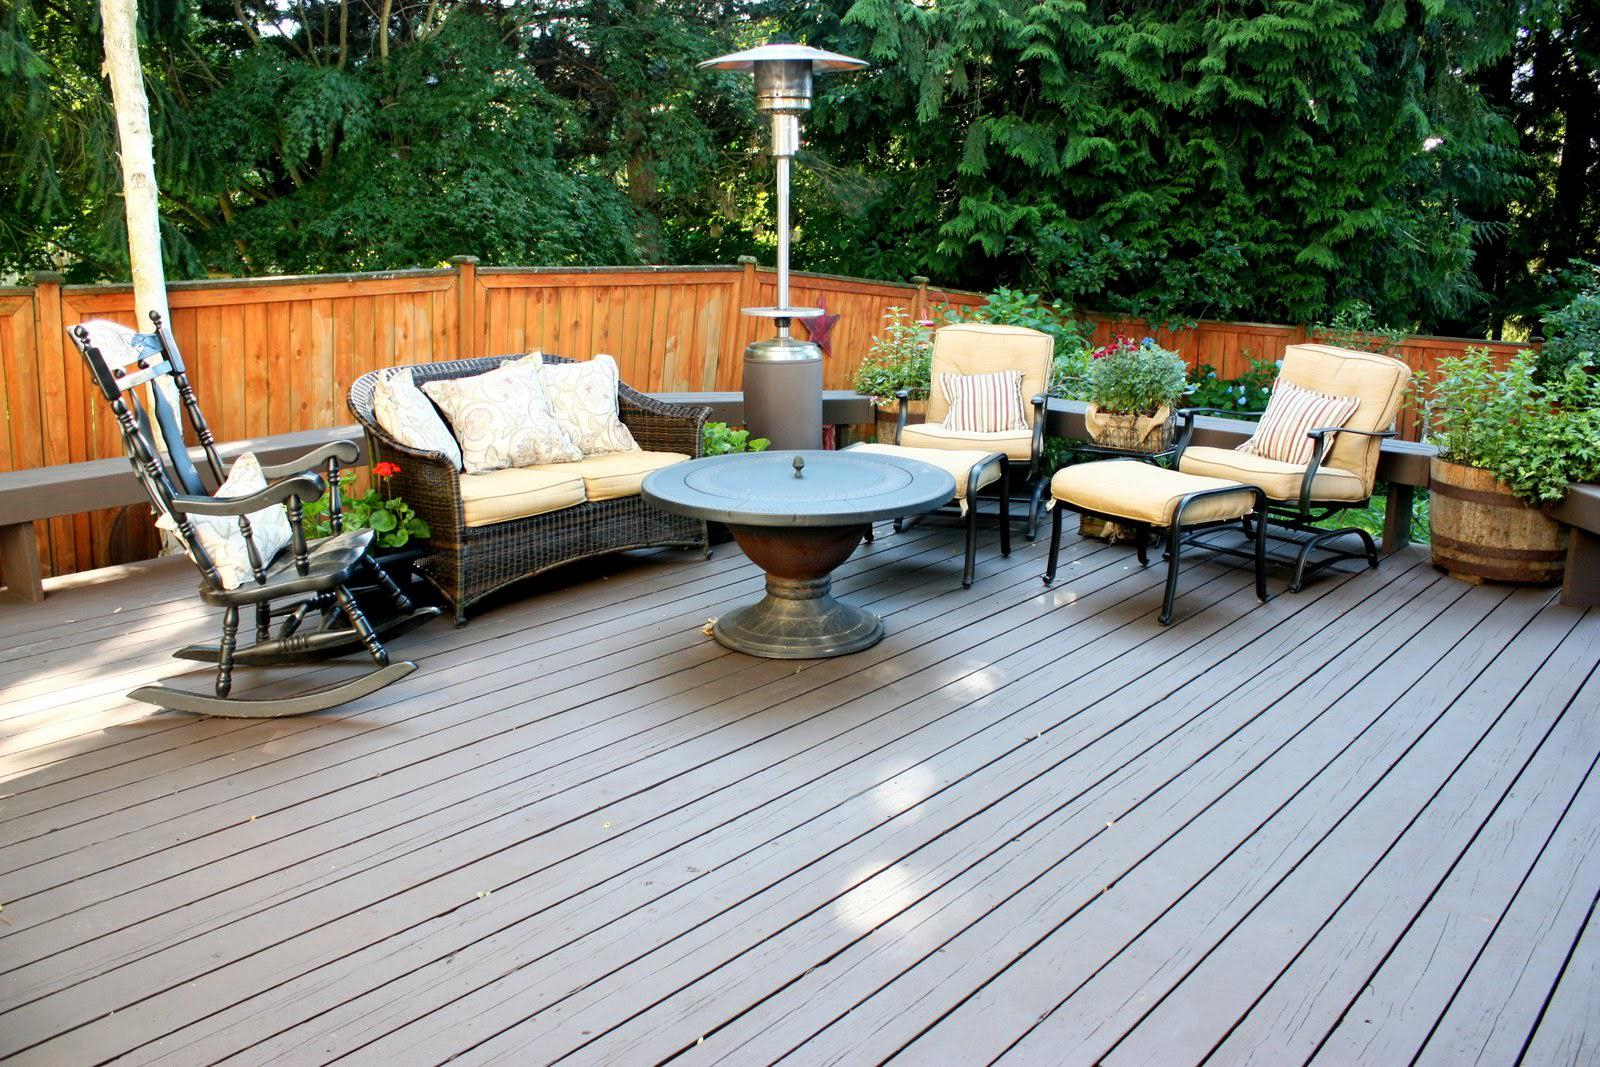 Behr Deckover On Concrete Patio Farmhouse Design And Furniture For Measurements 1600 X 1067